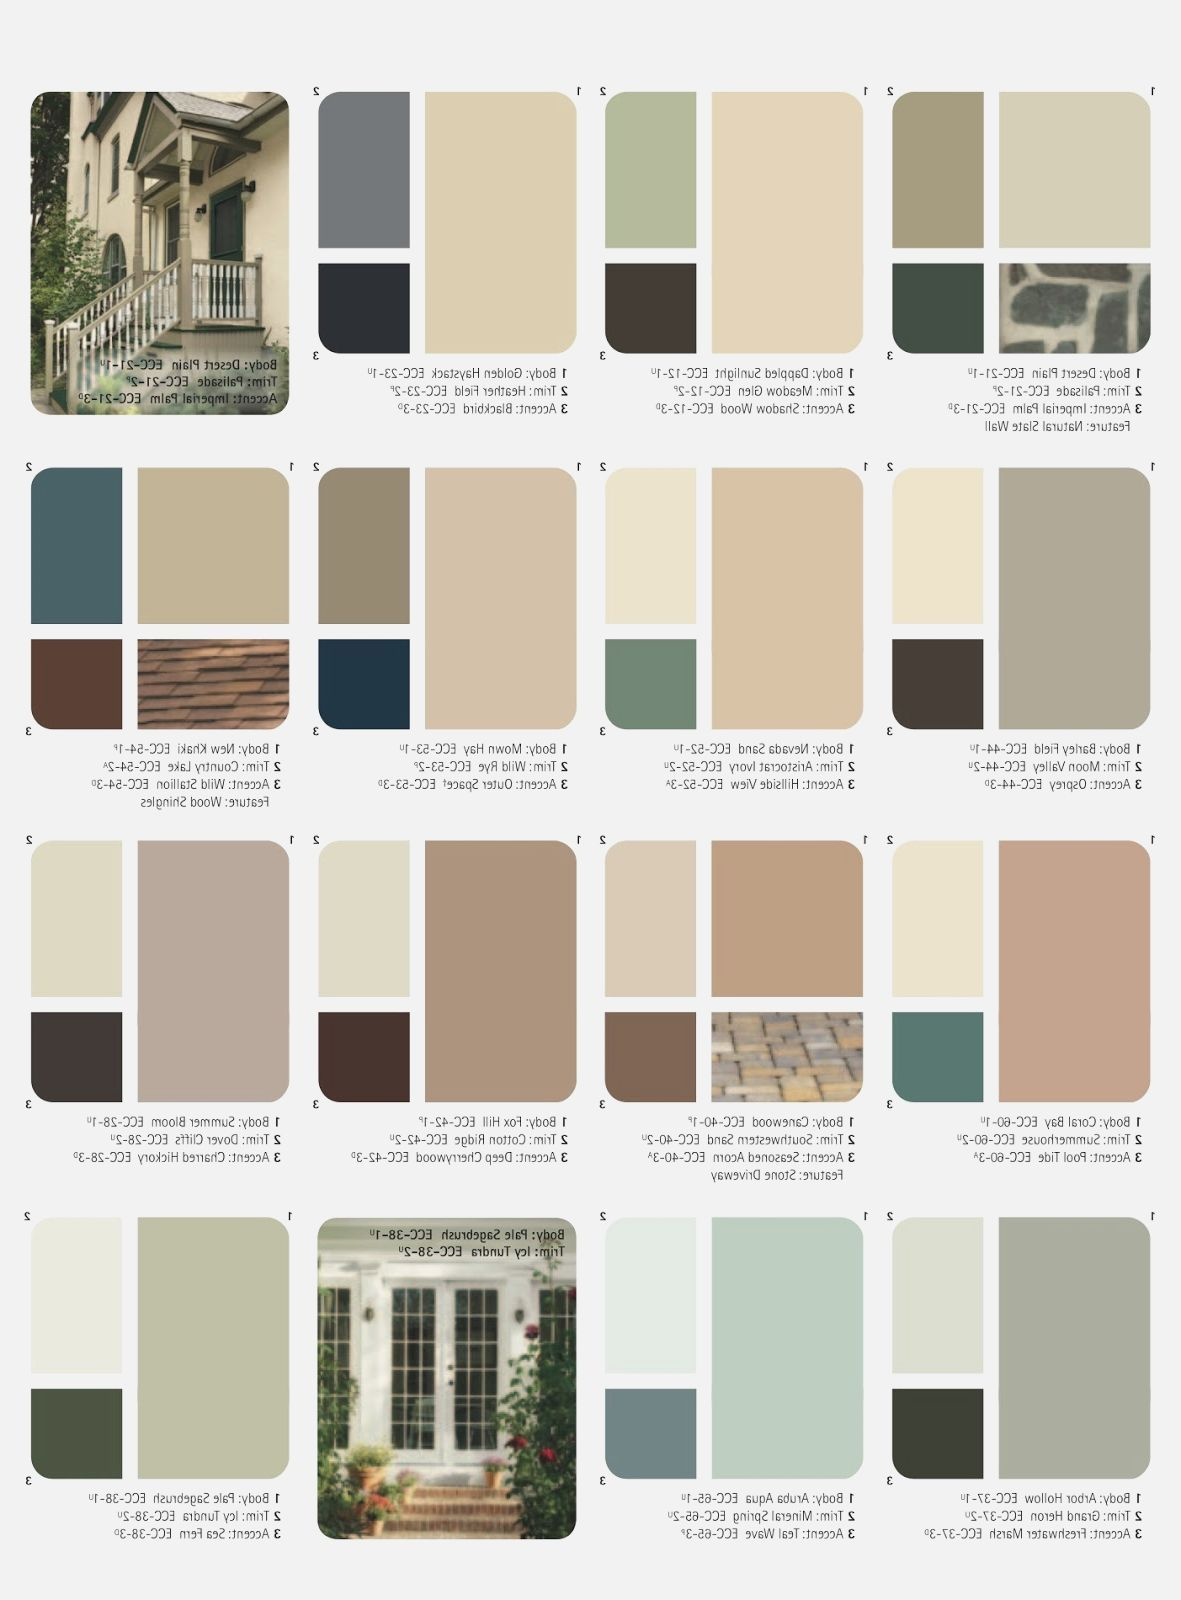 Modern Exterior House Color Combinations M Wall Decal: davies paint exterior color combination